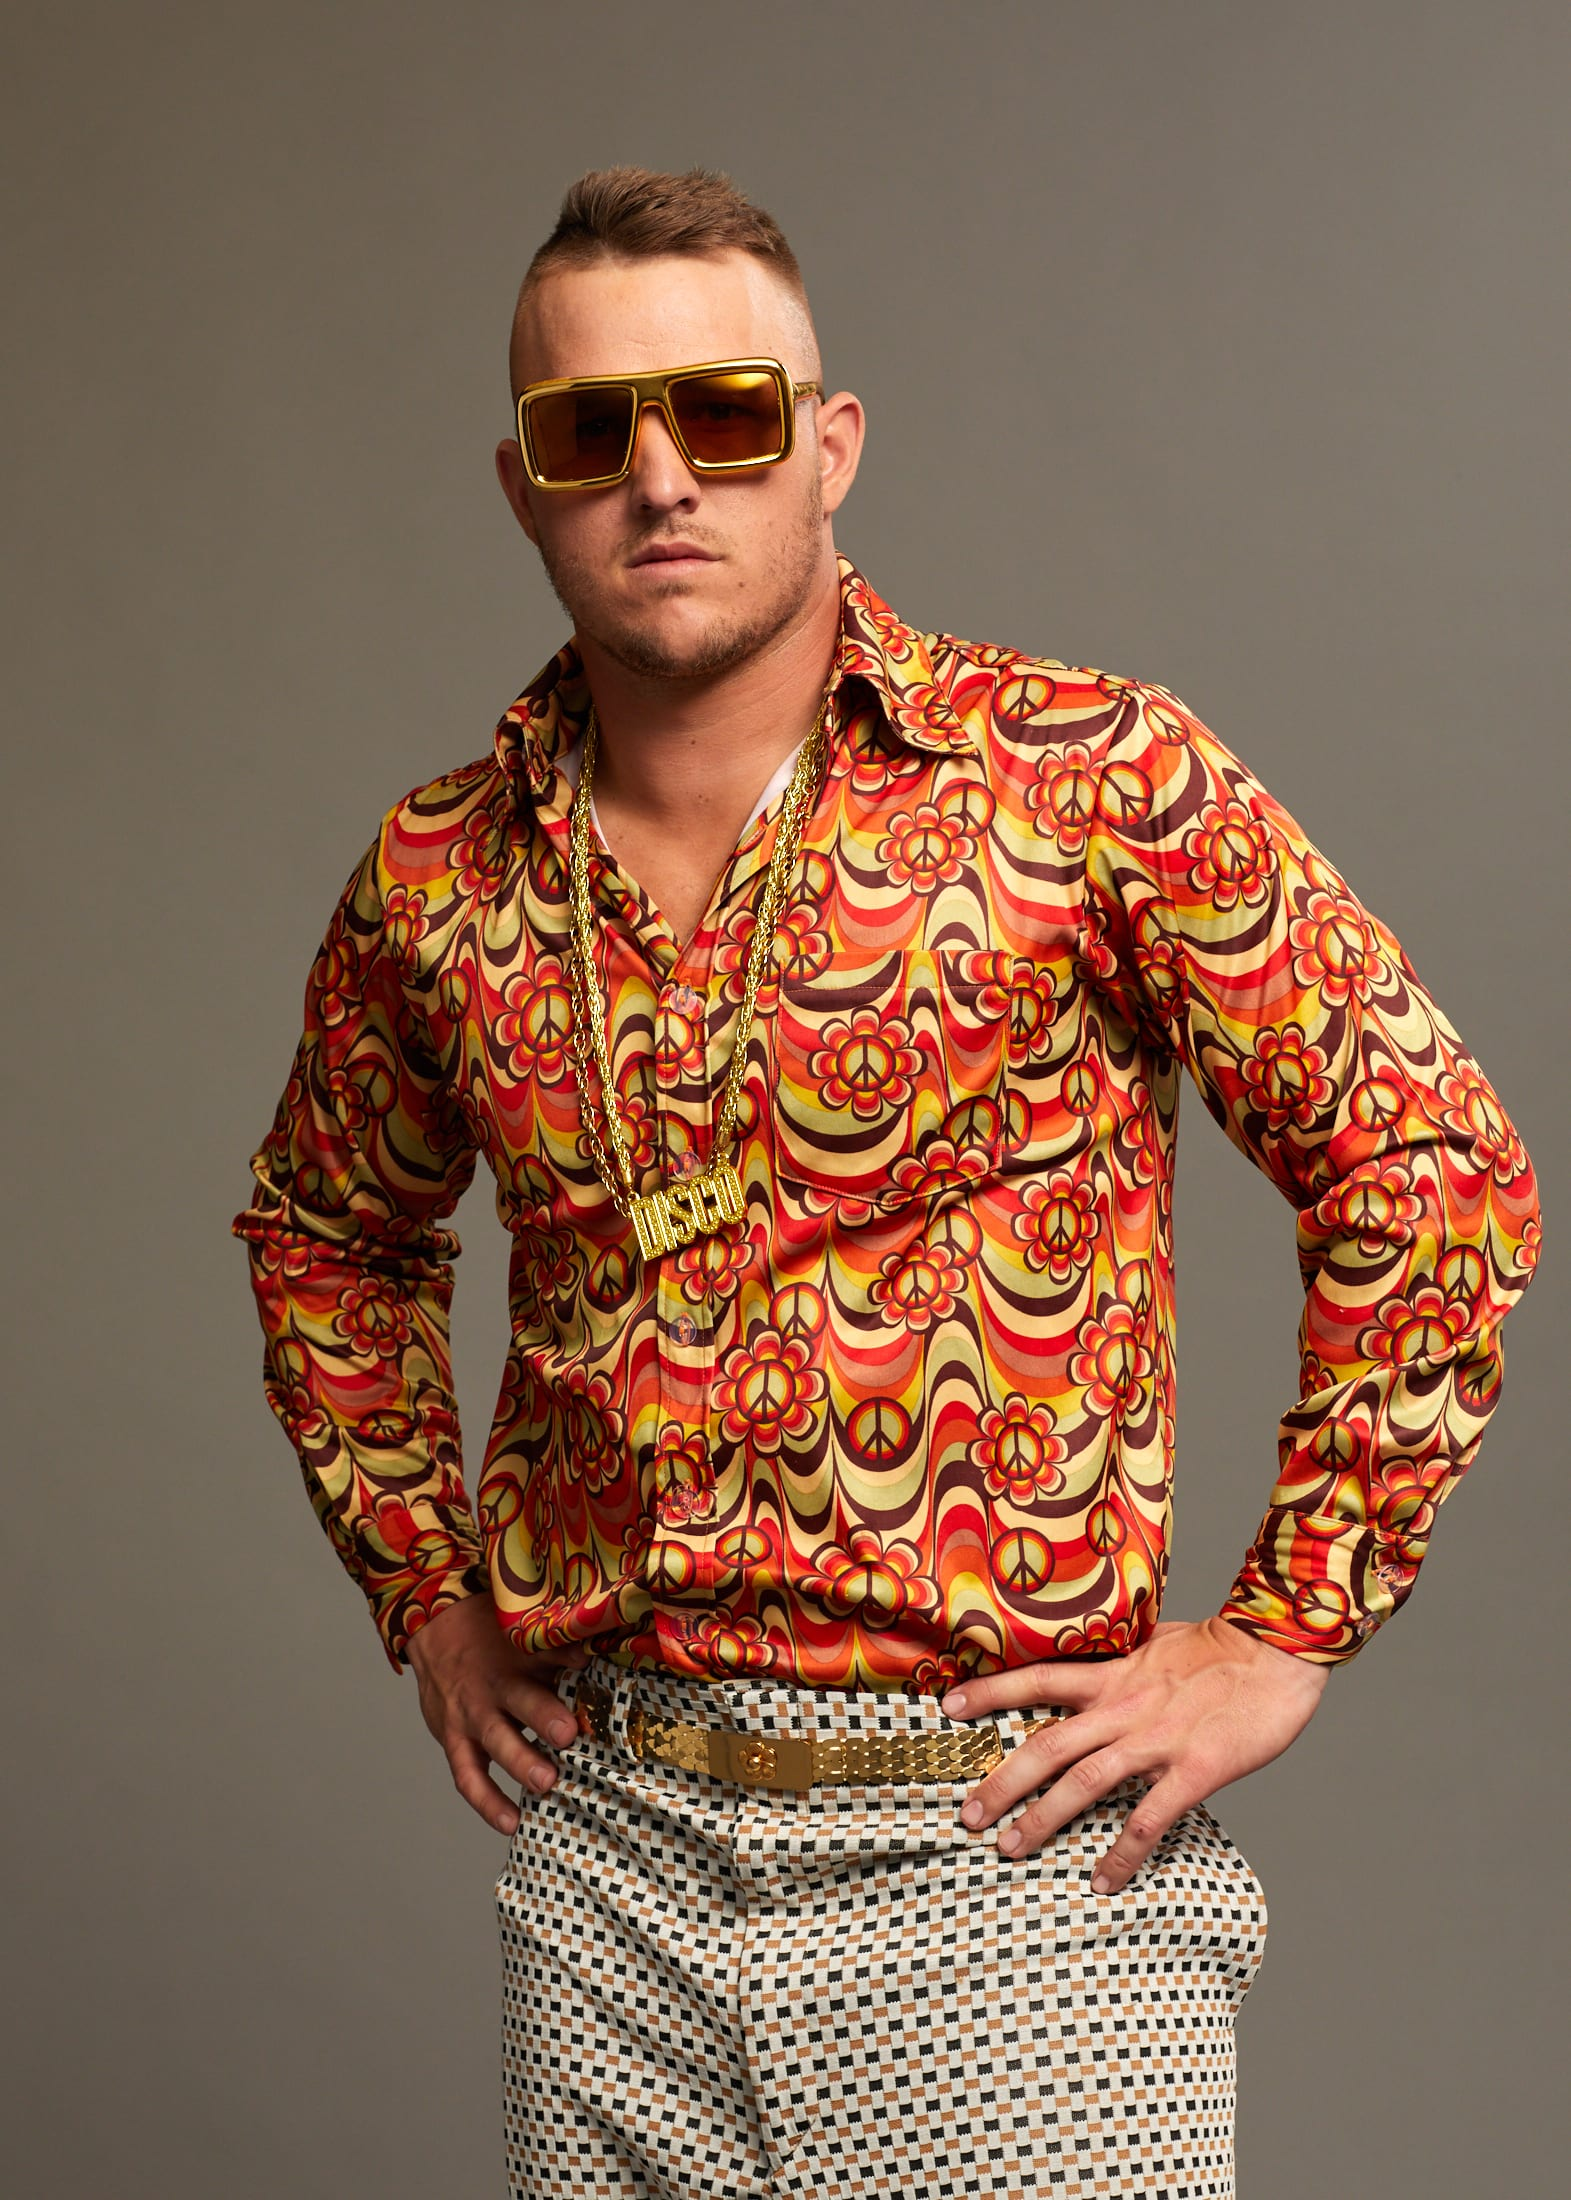 Mike Trout Shooting Disco Battle credit to BODYARMOR